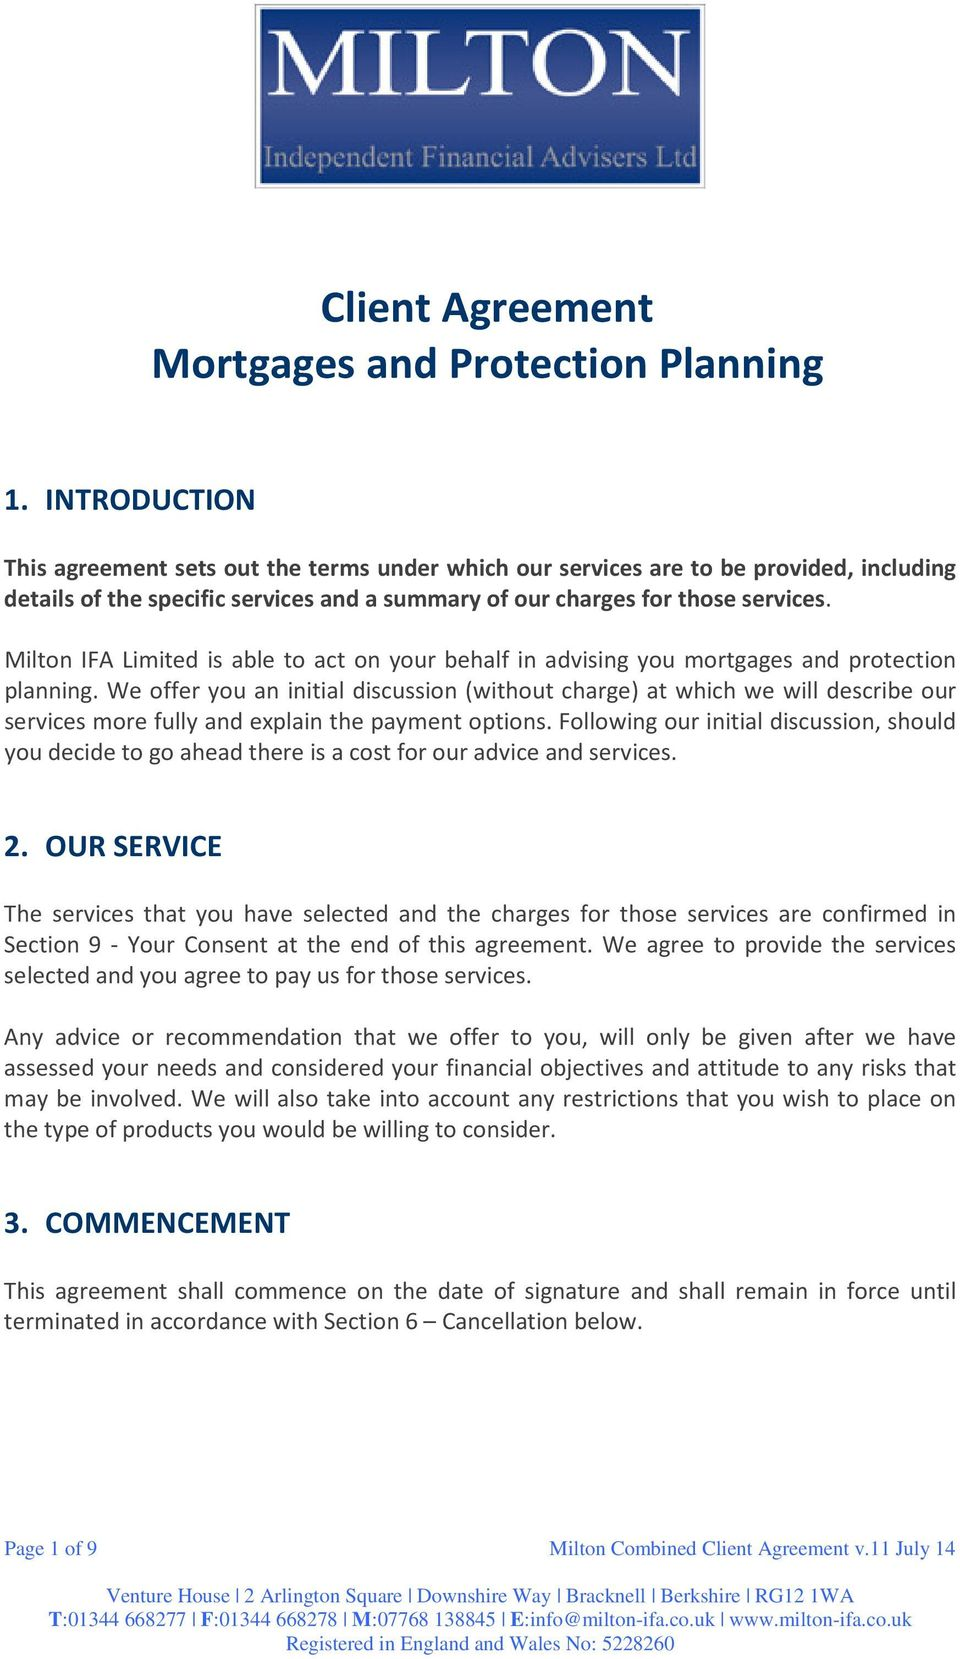 Milton IFA Limited is able to act on your behalf in advising you mortgages and protection planning.